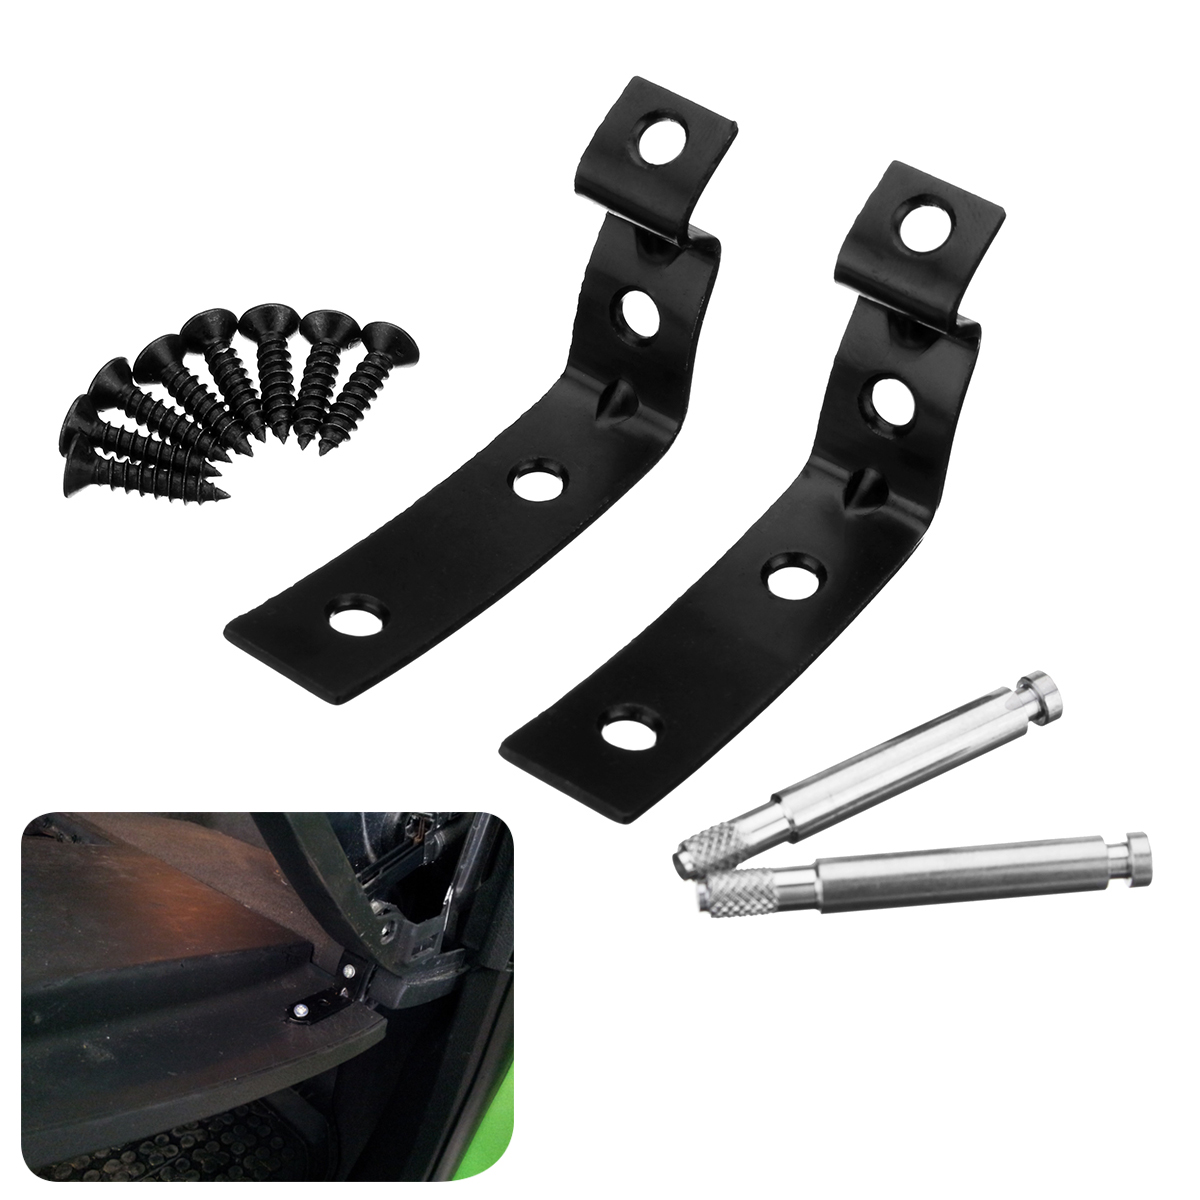 Glove Box Hinge Bracket Lid Snapped Repair Tool Kit for Audi A4 S4 B6 B7 94-16